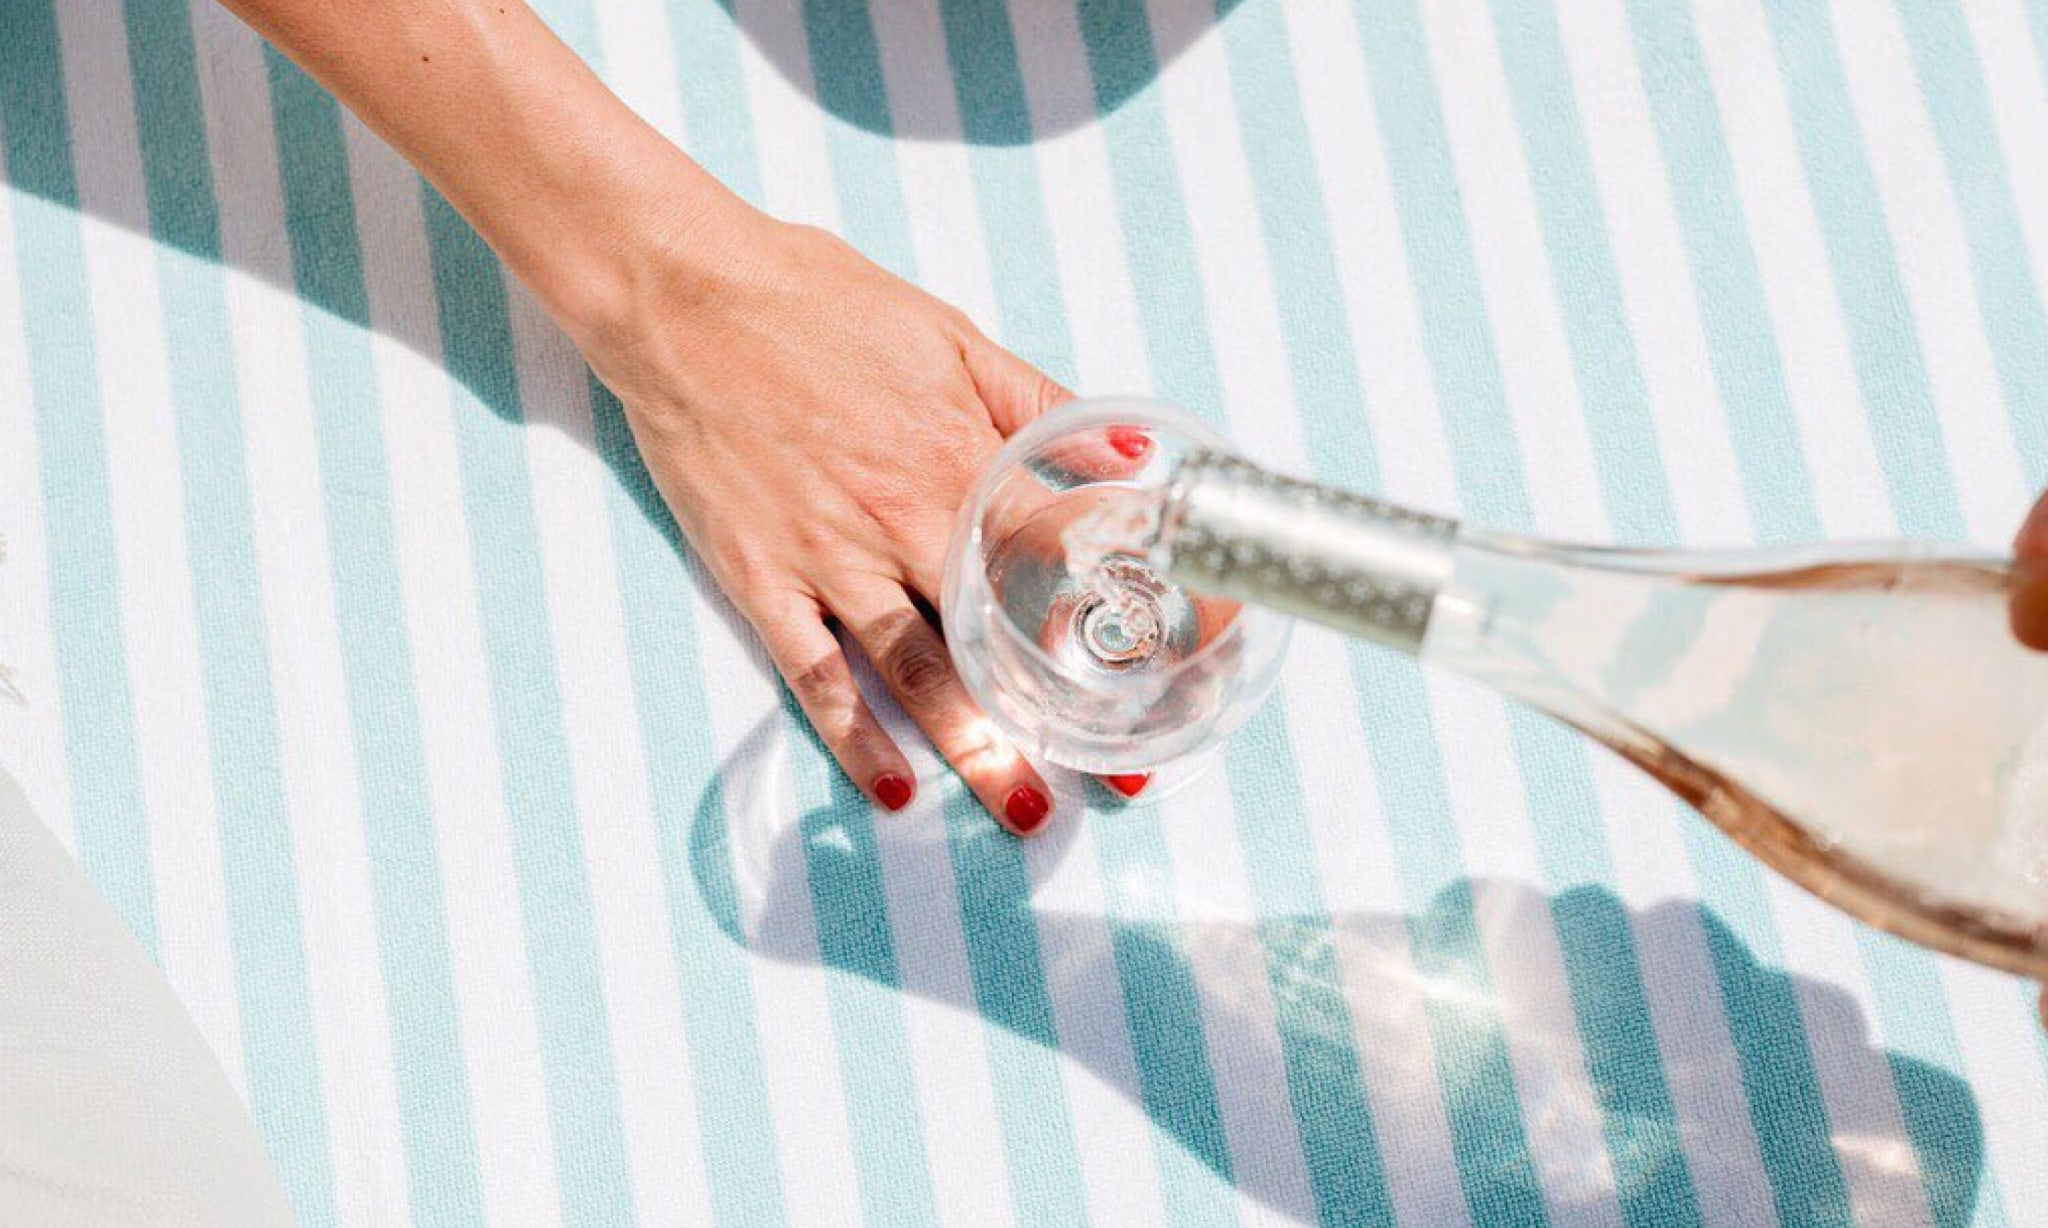 A hand steadies a glass with wine being poured into it.